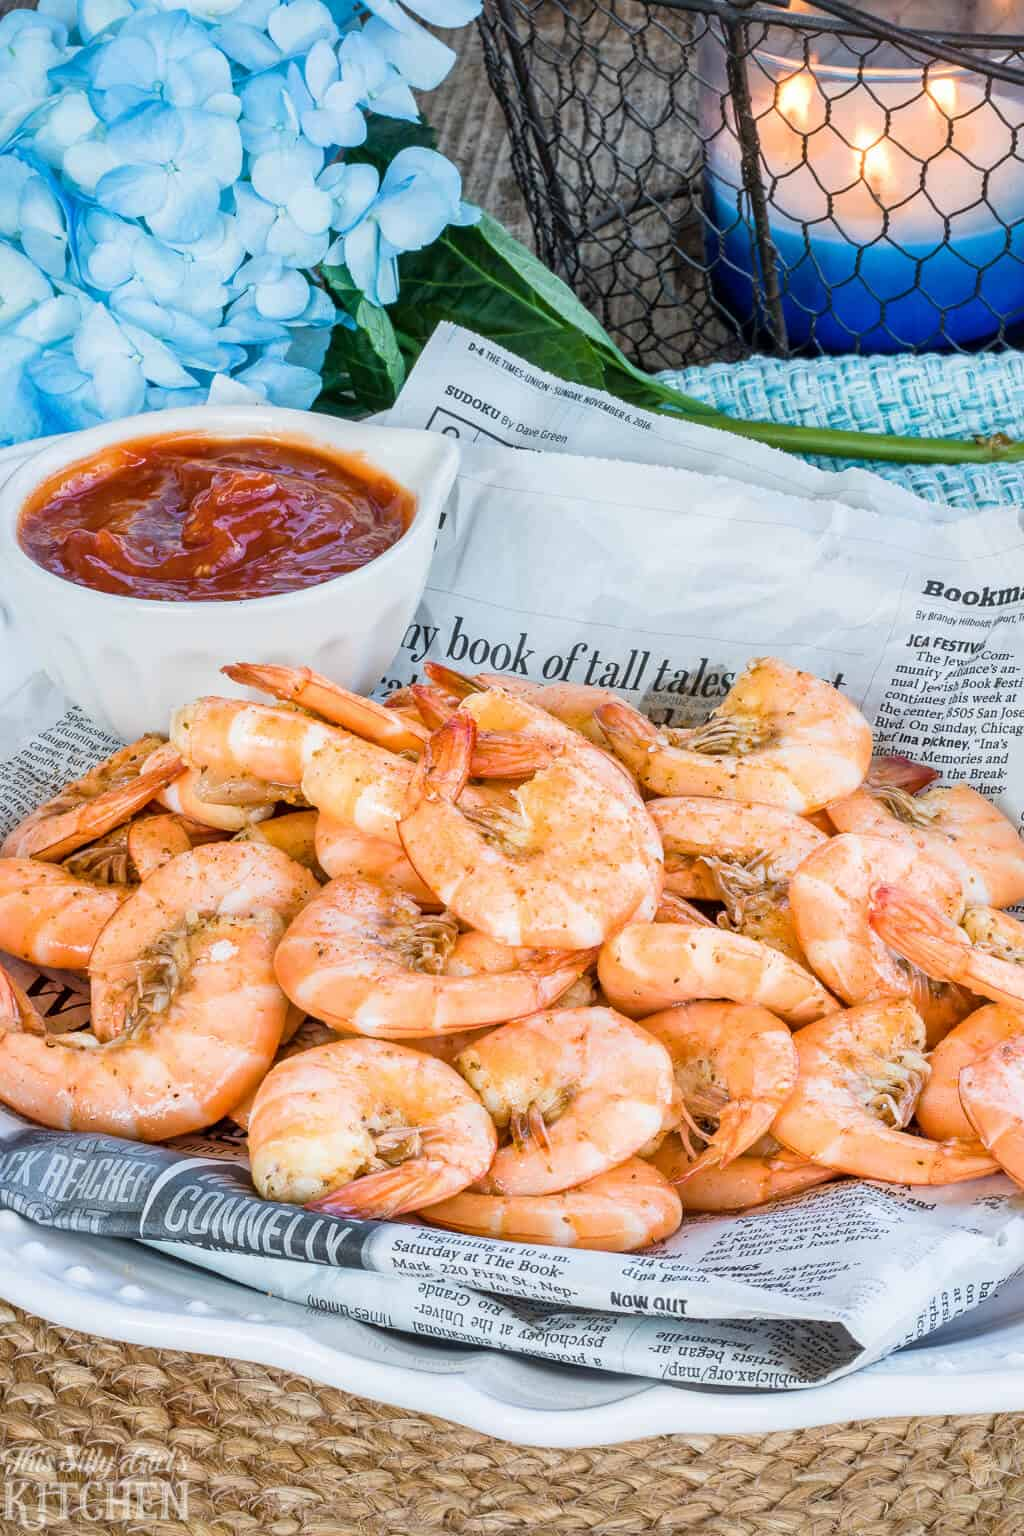 Shrimp Cocktail, boiled in a rich beer stock makes this one super flavorful shrimp cocktail!